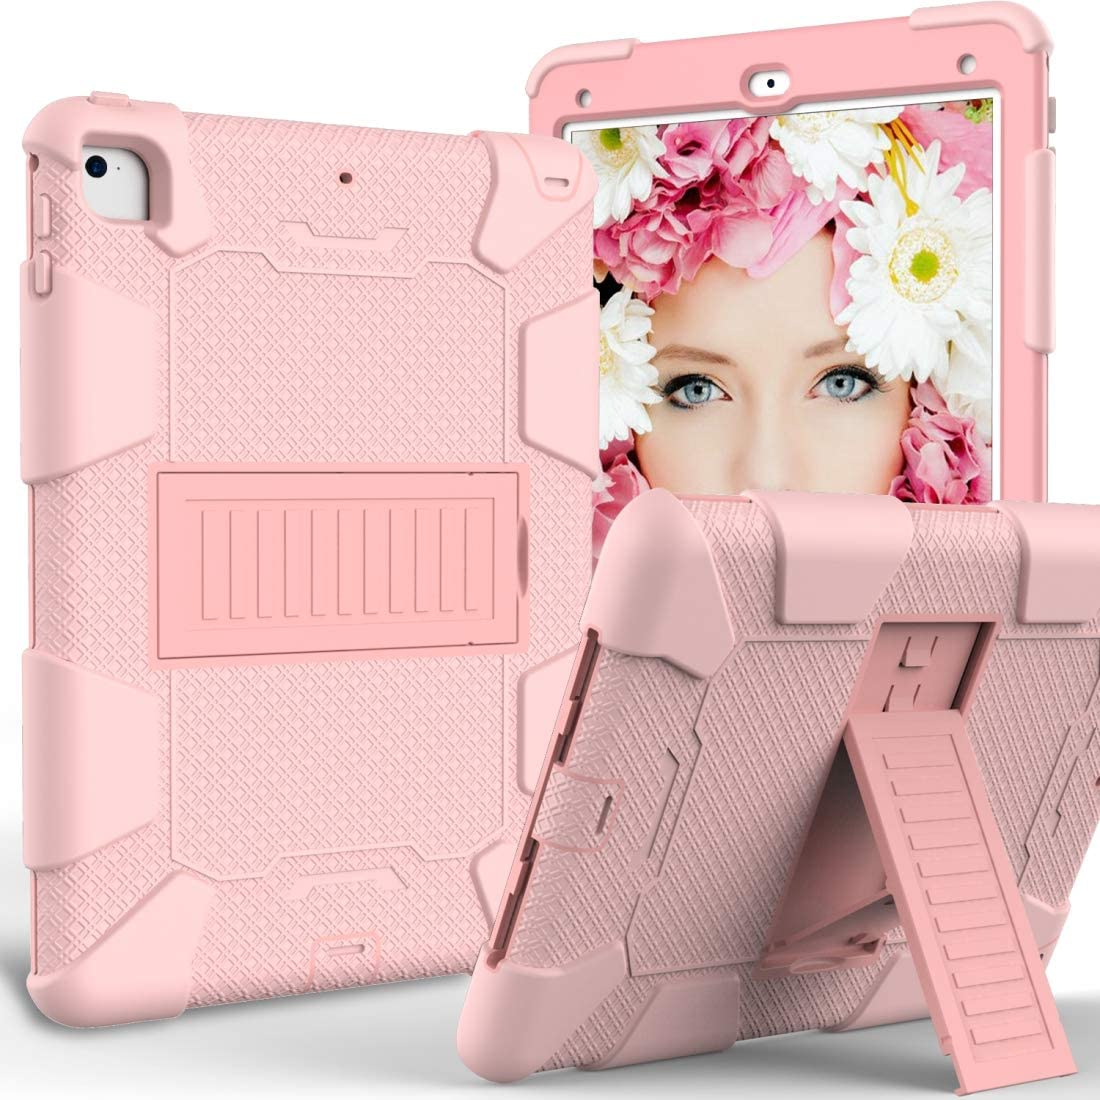 DESHENG Tablet Protective Clips Shockproof Two-Color Silicone Protection Shell for iPad 9.7(2018) & 9.7(2017) & Air 2, with Holder(Rose Gold) Tablet PC Bag (Color : Rose Gold)